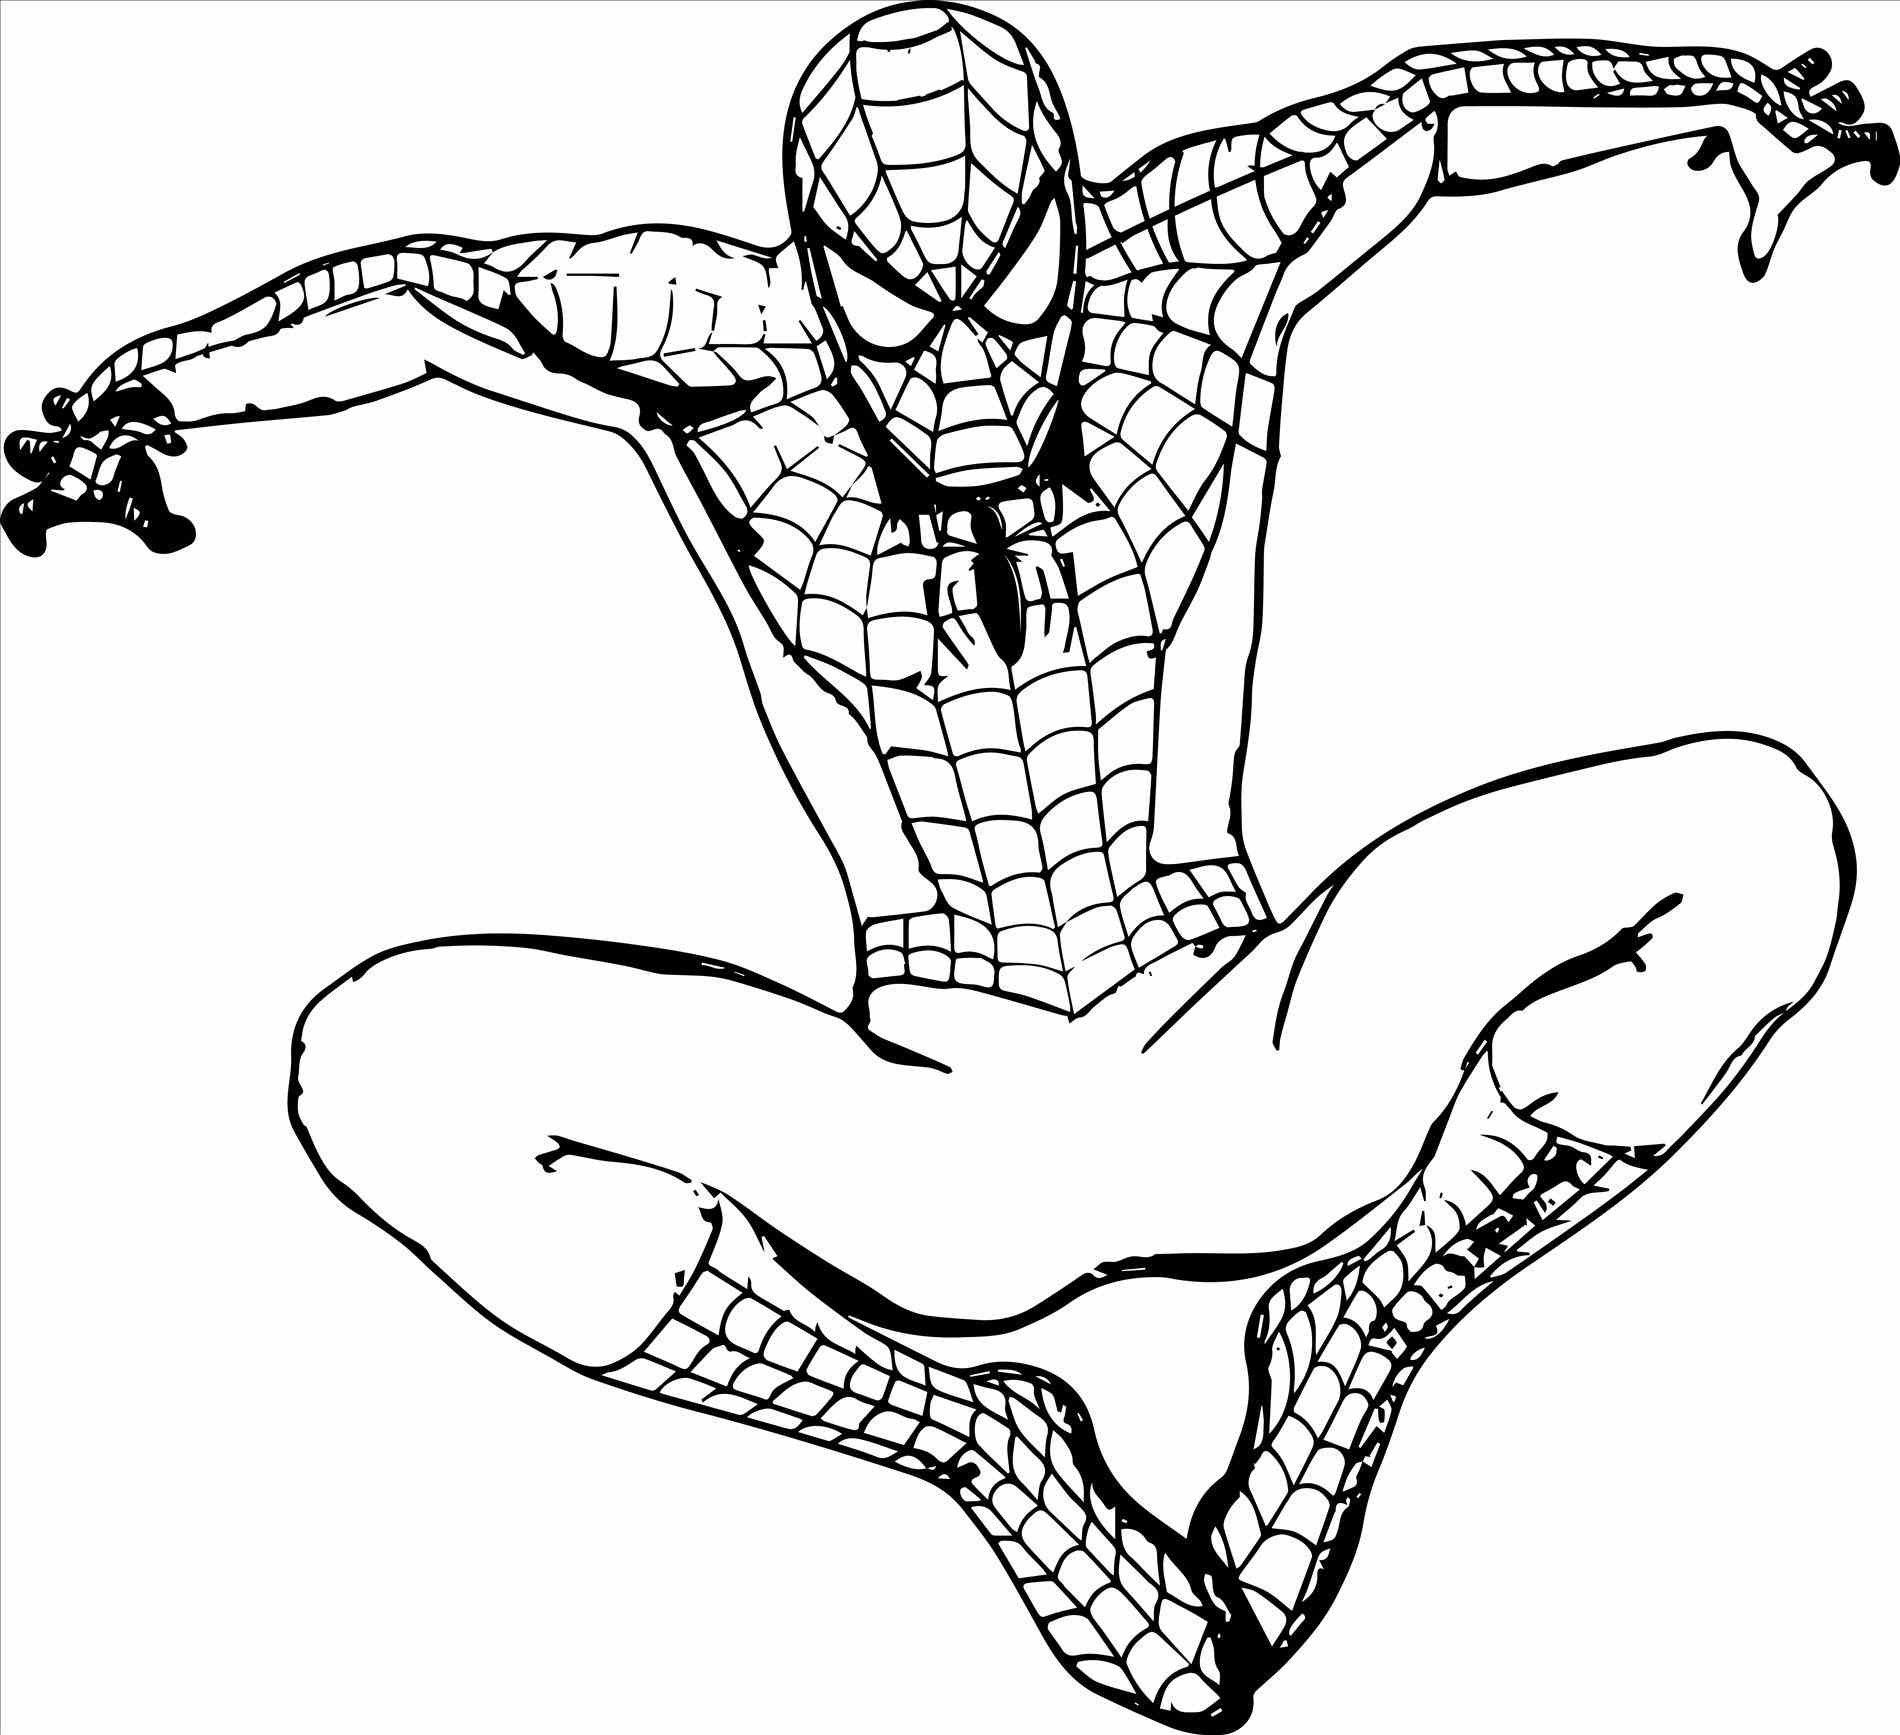 Easy Spiderman Pictures To Draw Free Printable Spiderman Coloring Pages Heathermarxgallery Superhero Coloring Pages Superhero Coloring Spiderman Coloring